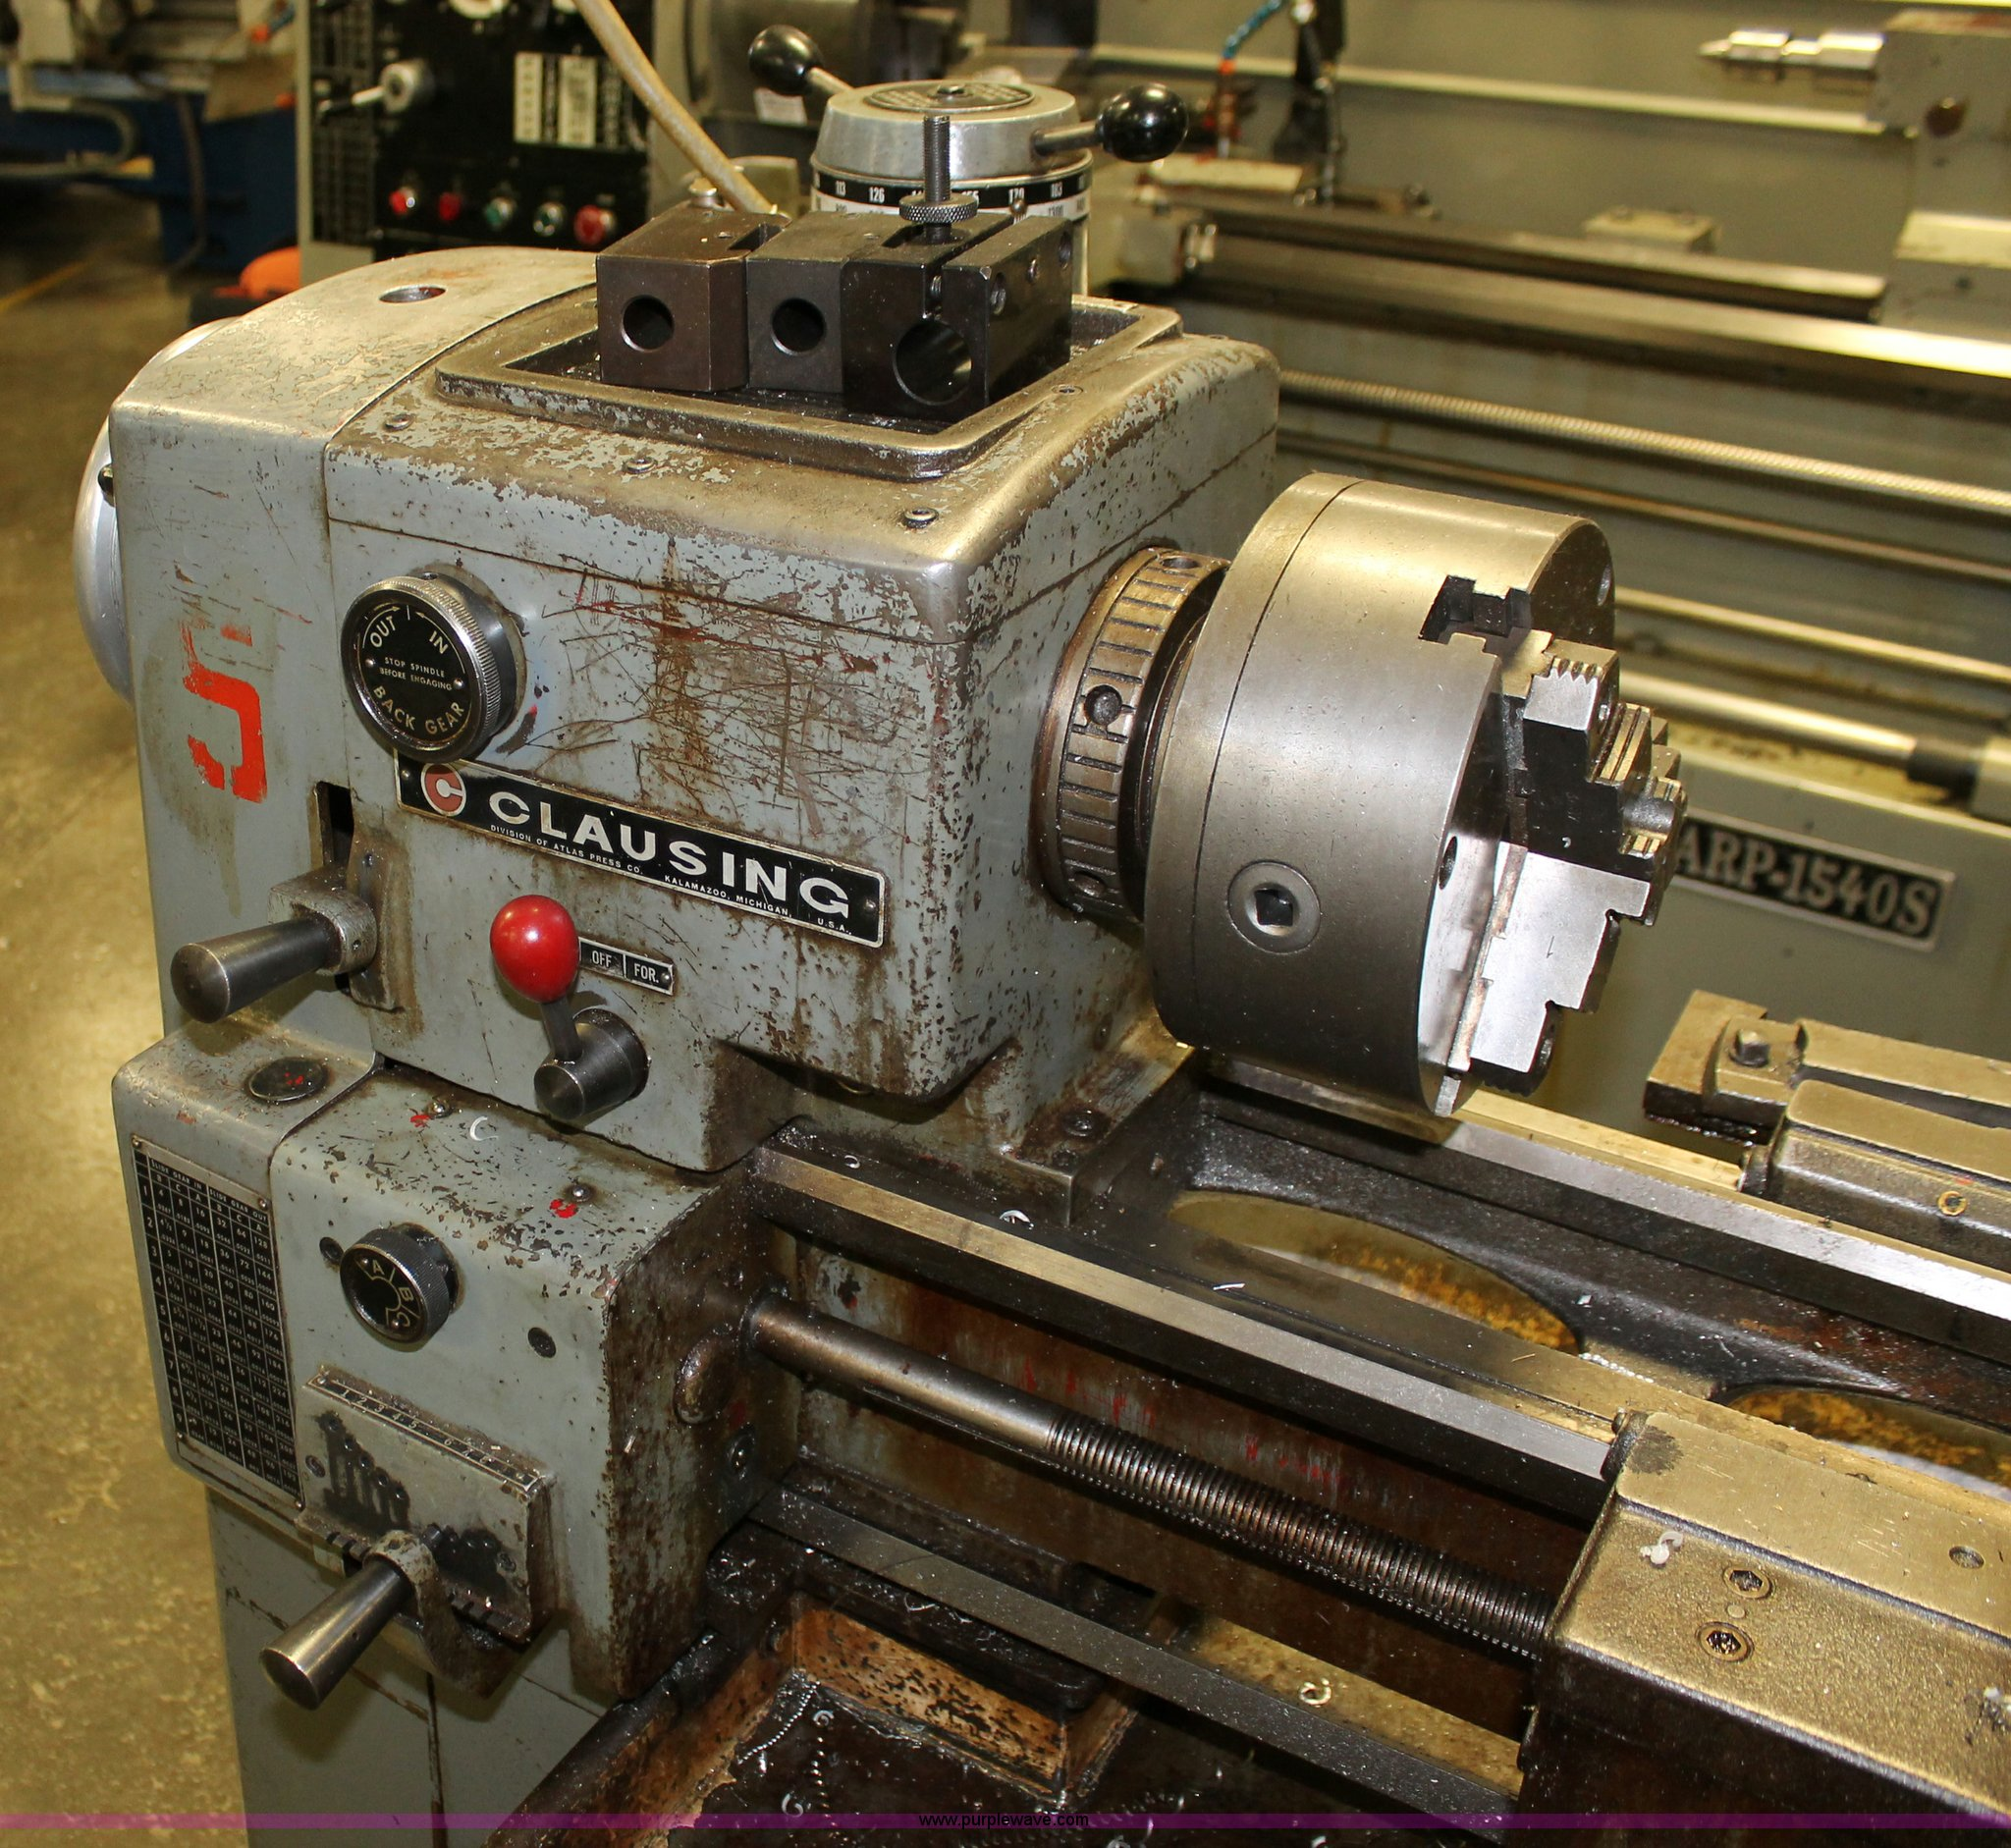 Clausing engine lathe | Item O9468 | SOLD! Tuesday January 8